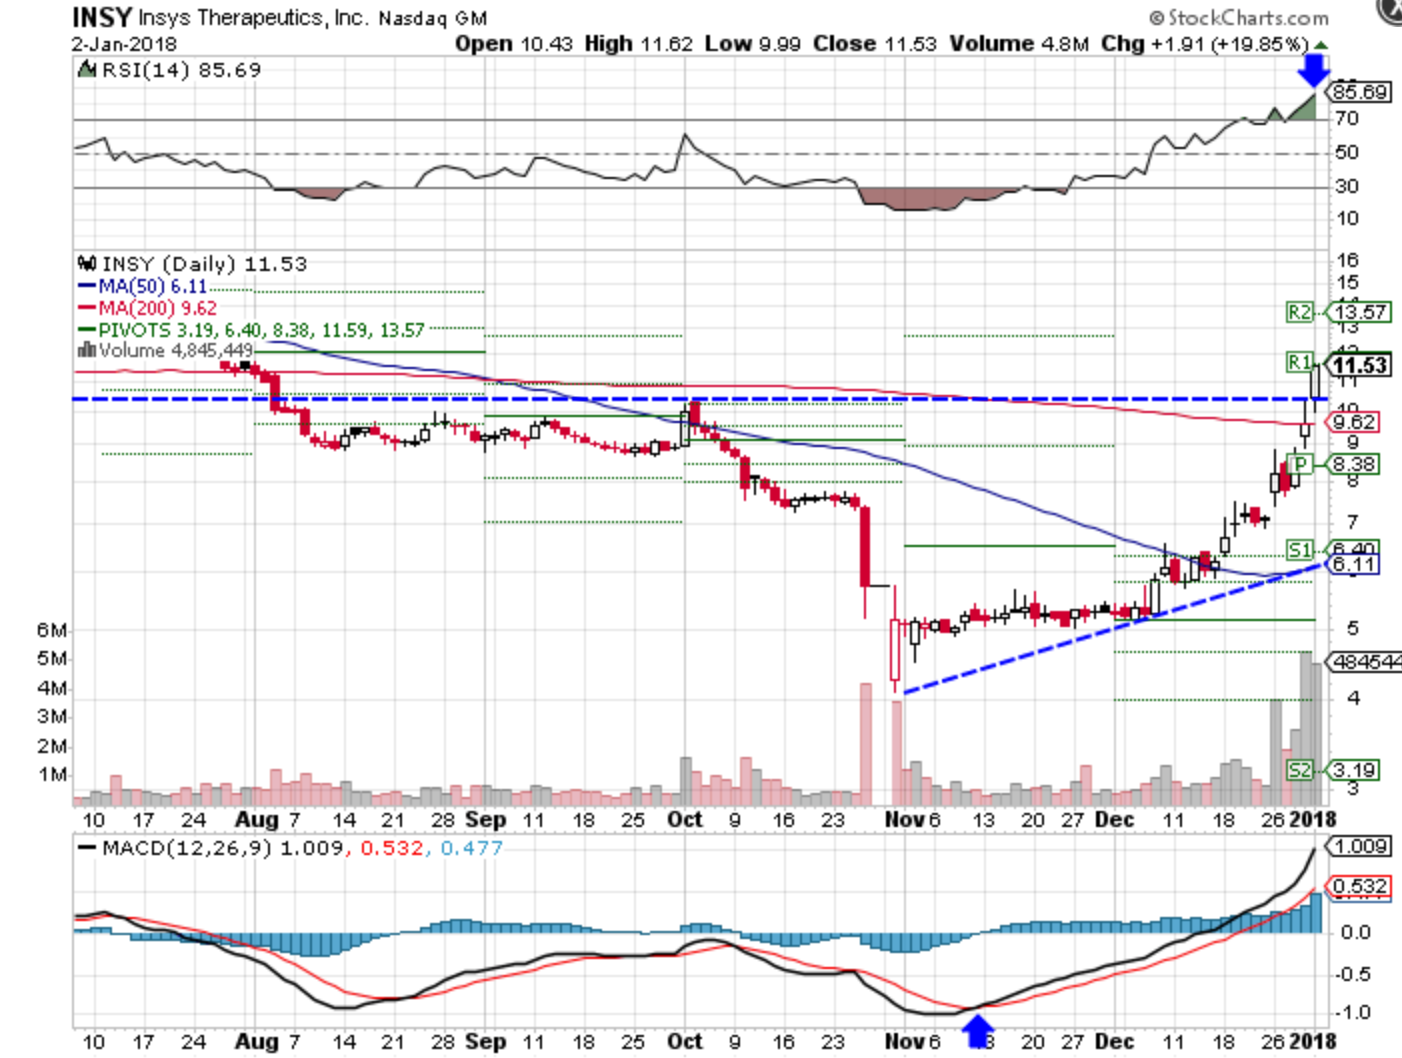 Technical chart showing the performance of Insys Therapeutics, Inc. (INSY)